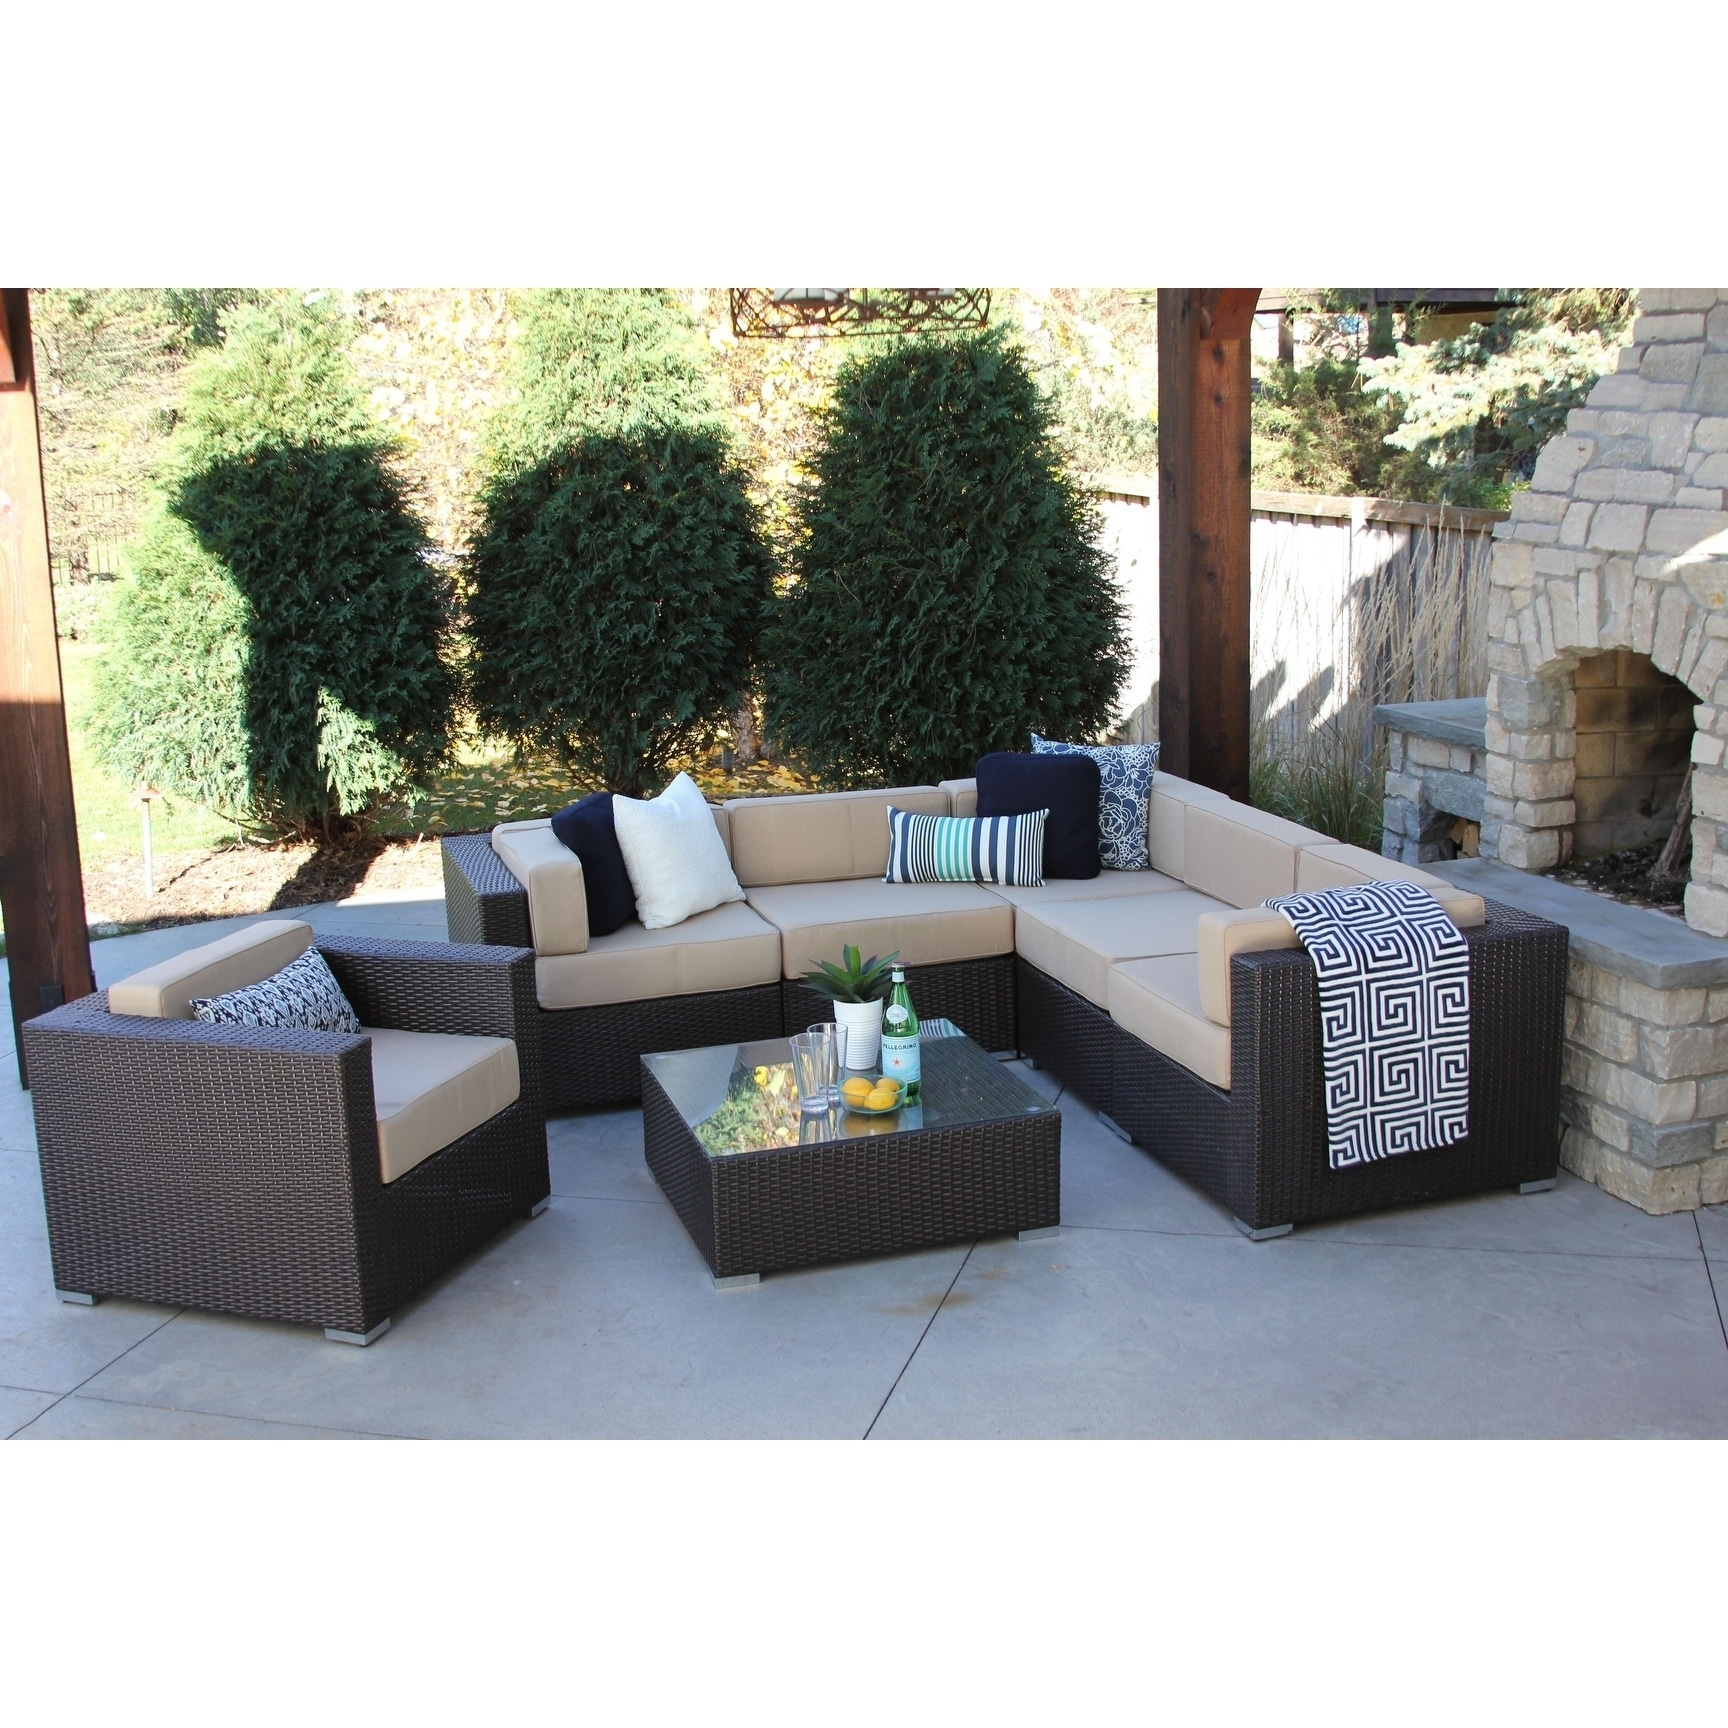 Alexandra 7 pc modern outdoor rattan patio furniture sofa set modular